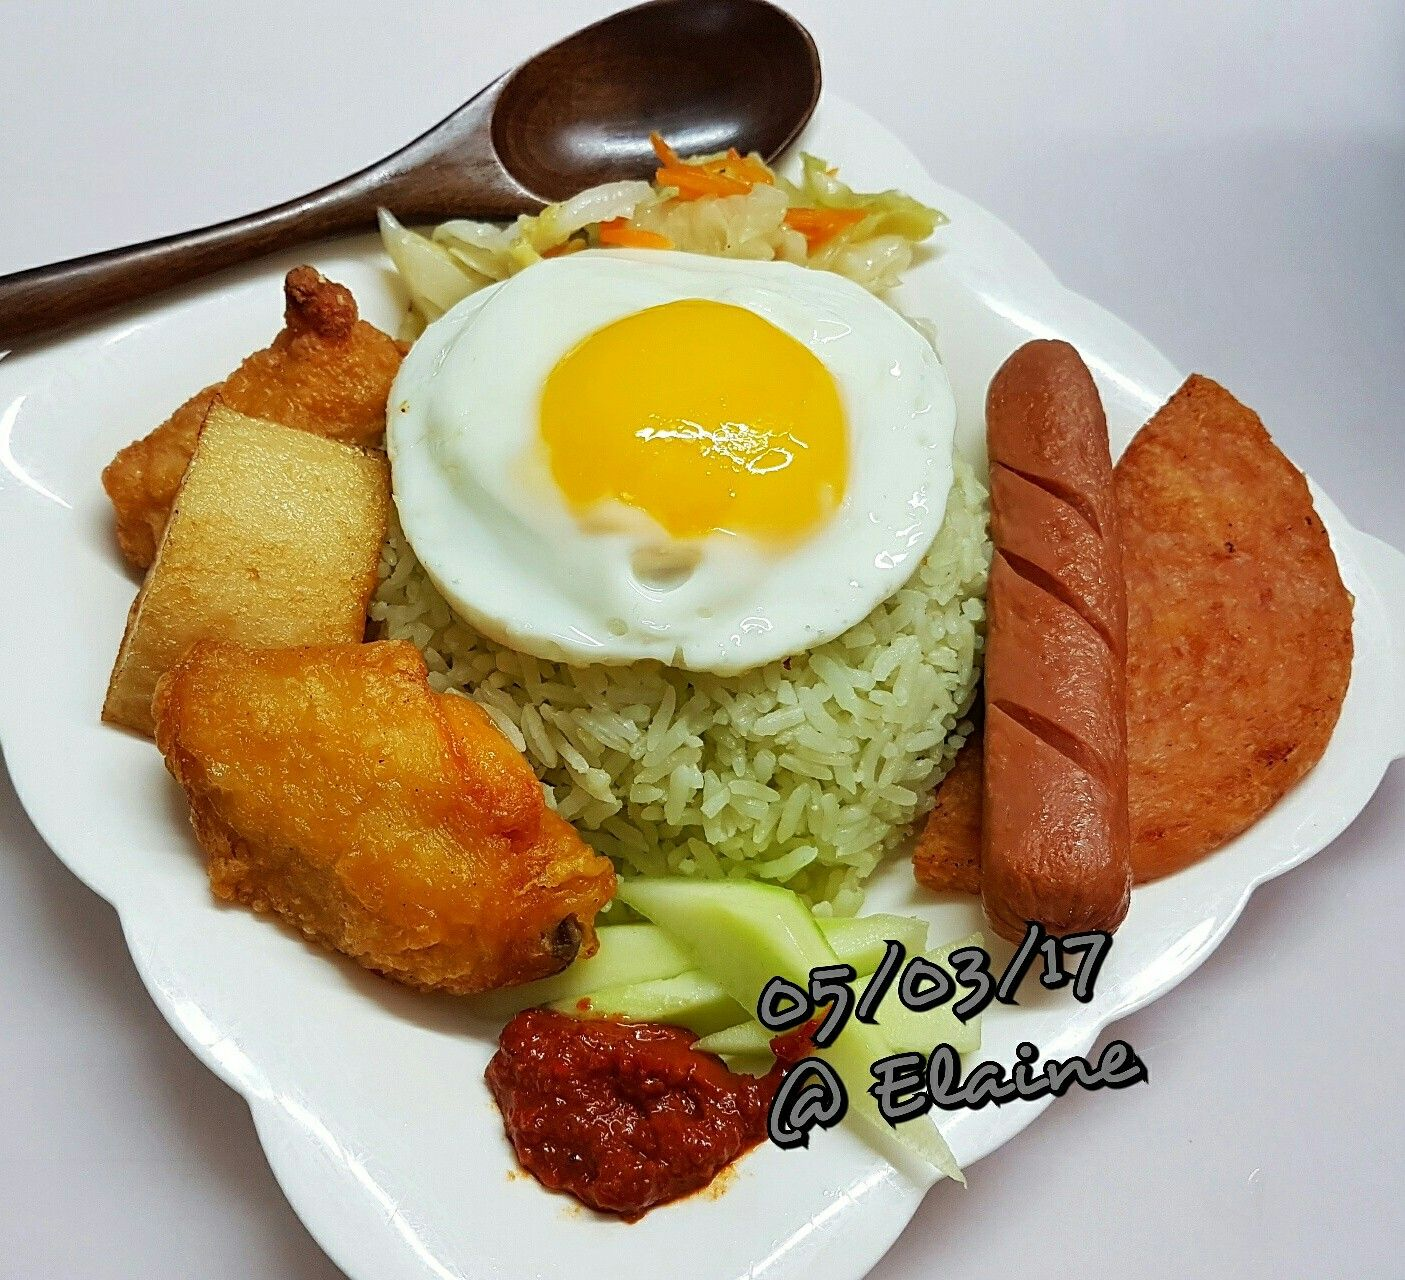 Nasi Lemak . . . . . #sg #sgfood #chinesefood #chicken #cookfood #homecooked #homemaker #fish #fishcake #coconut #coconutrice #veggies #nasilemak #malayfood #chickenwings #eggs #hotdog #luncheonmeat #dinnertime #lunchtime